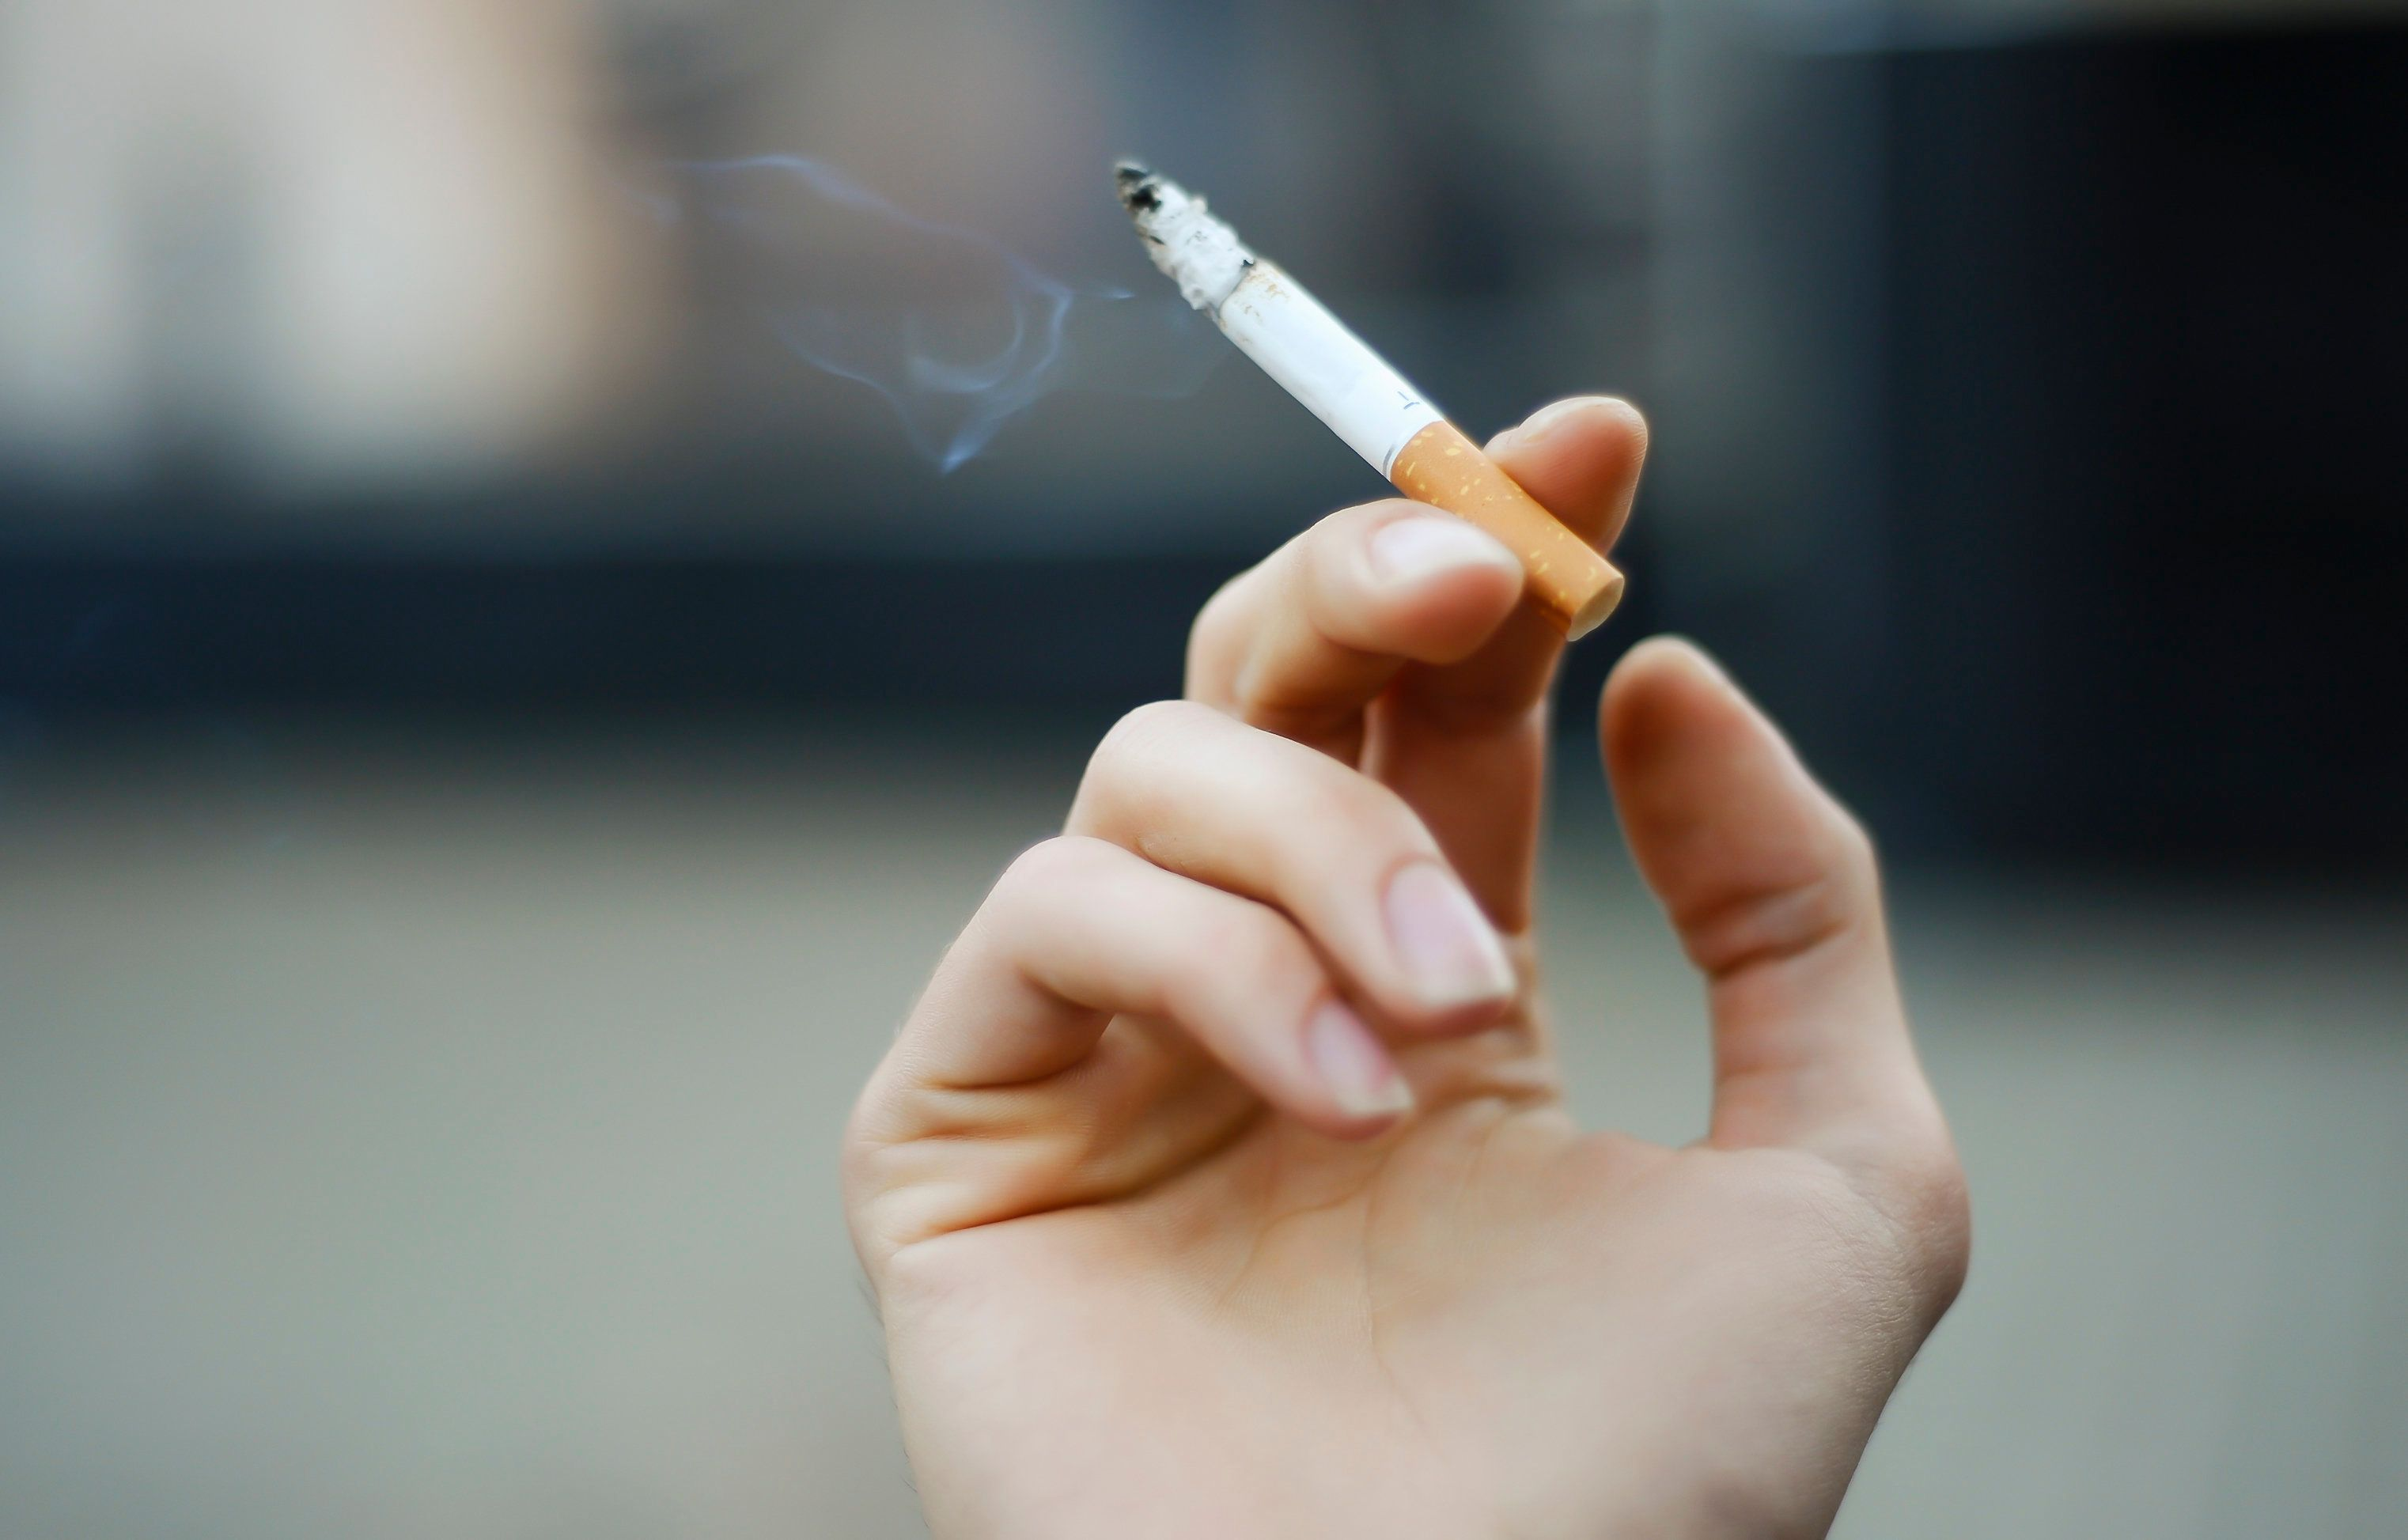 Best Way To Quit Smoking Is To Go 'Cold Turkey', Study